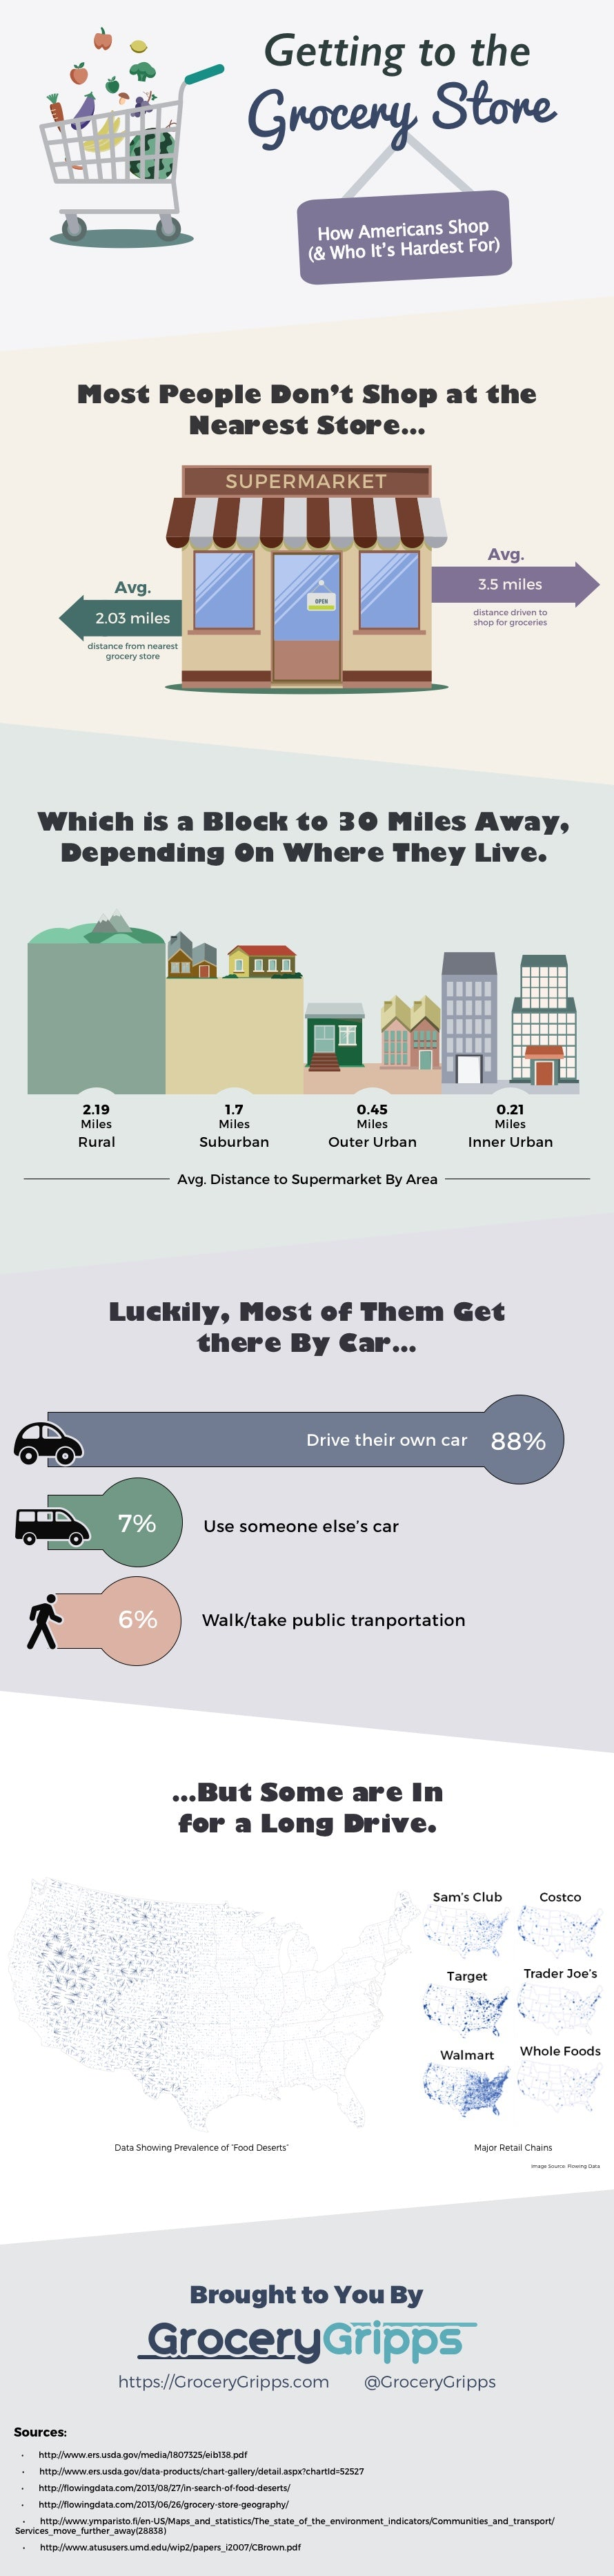 Getting to the Grocery Store (Infographic)